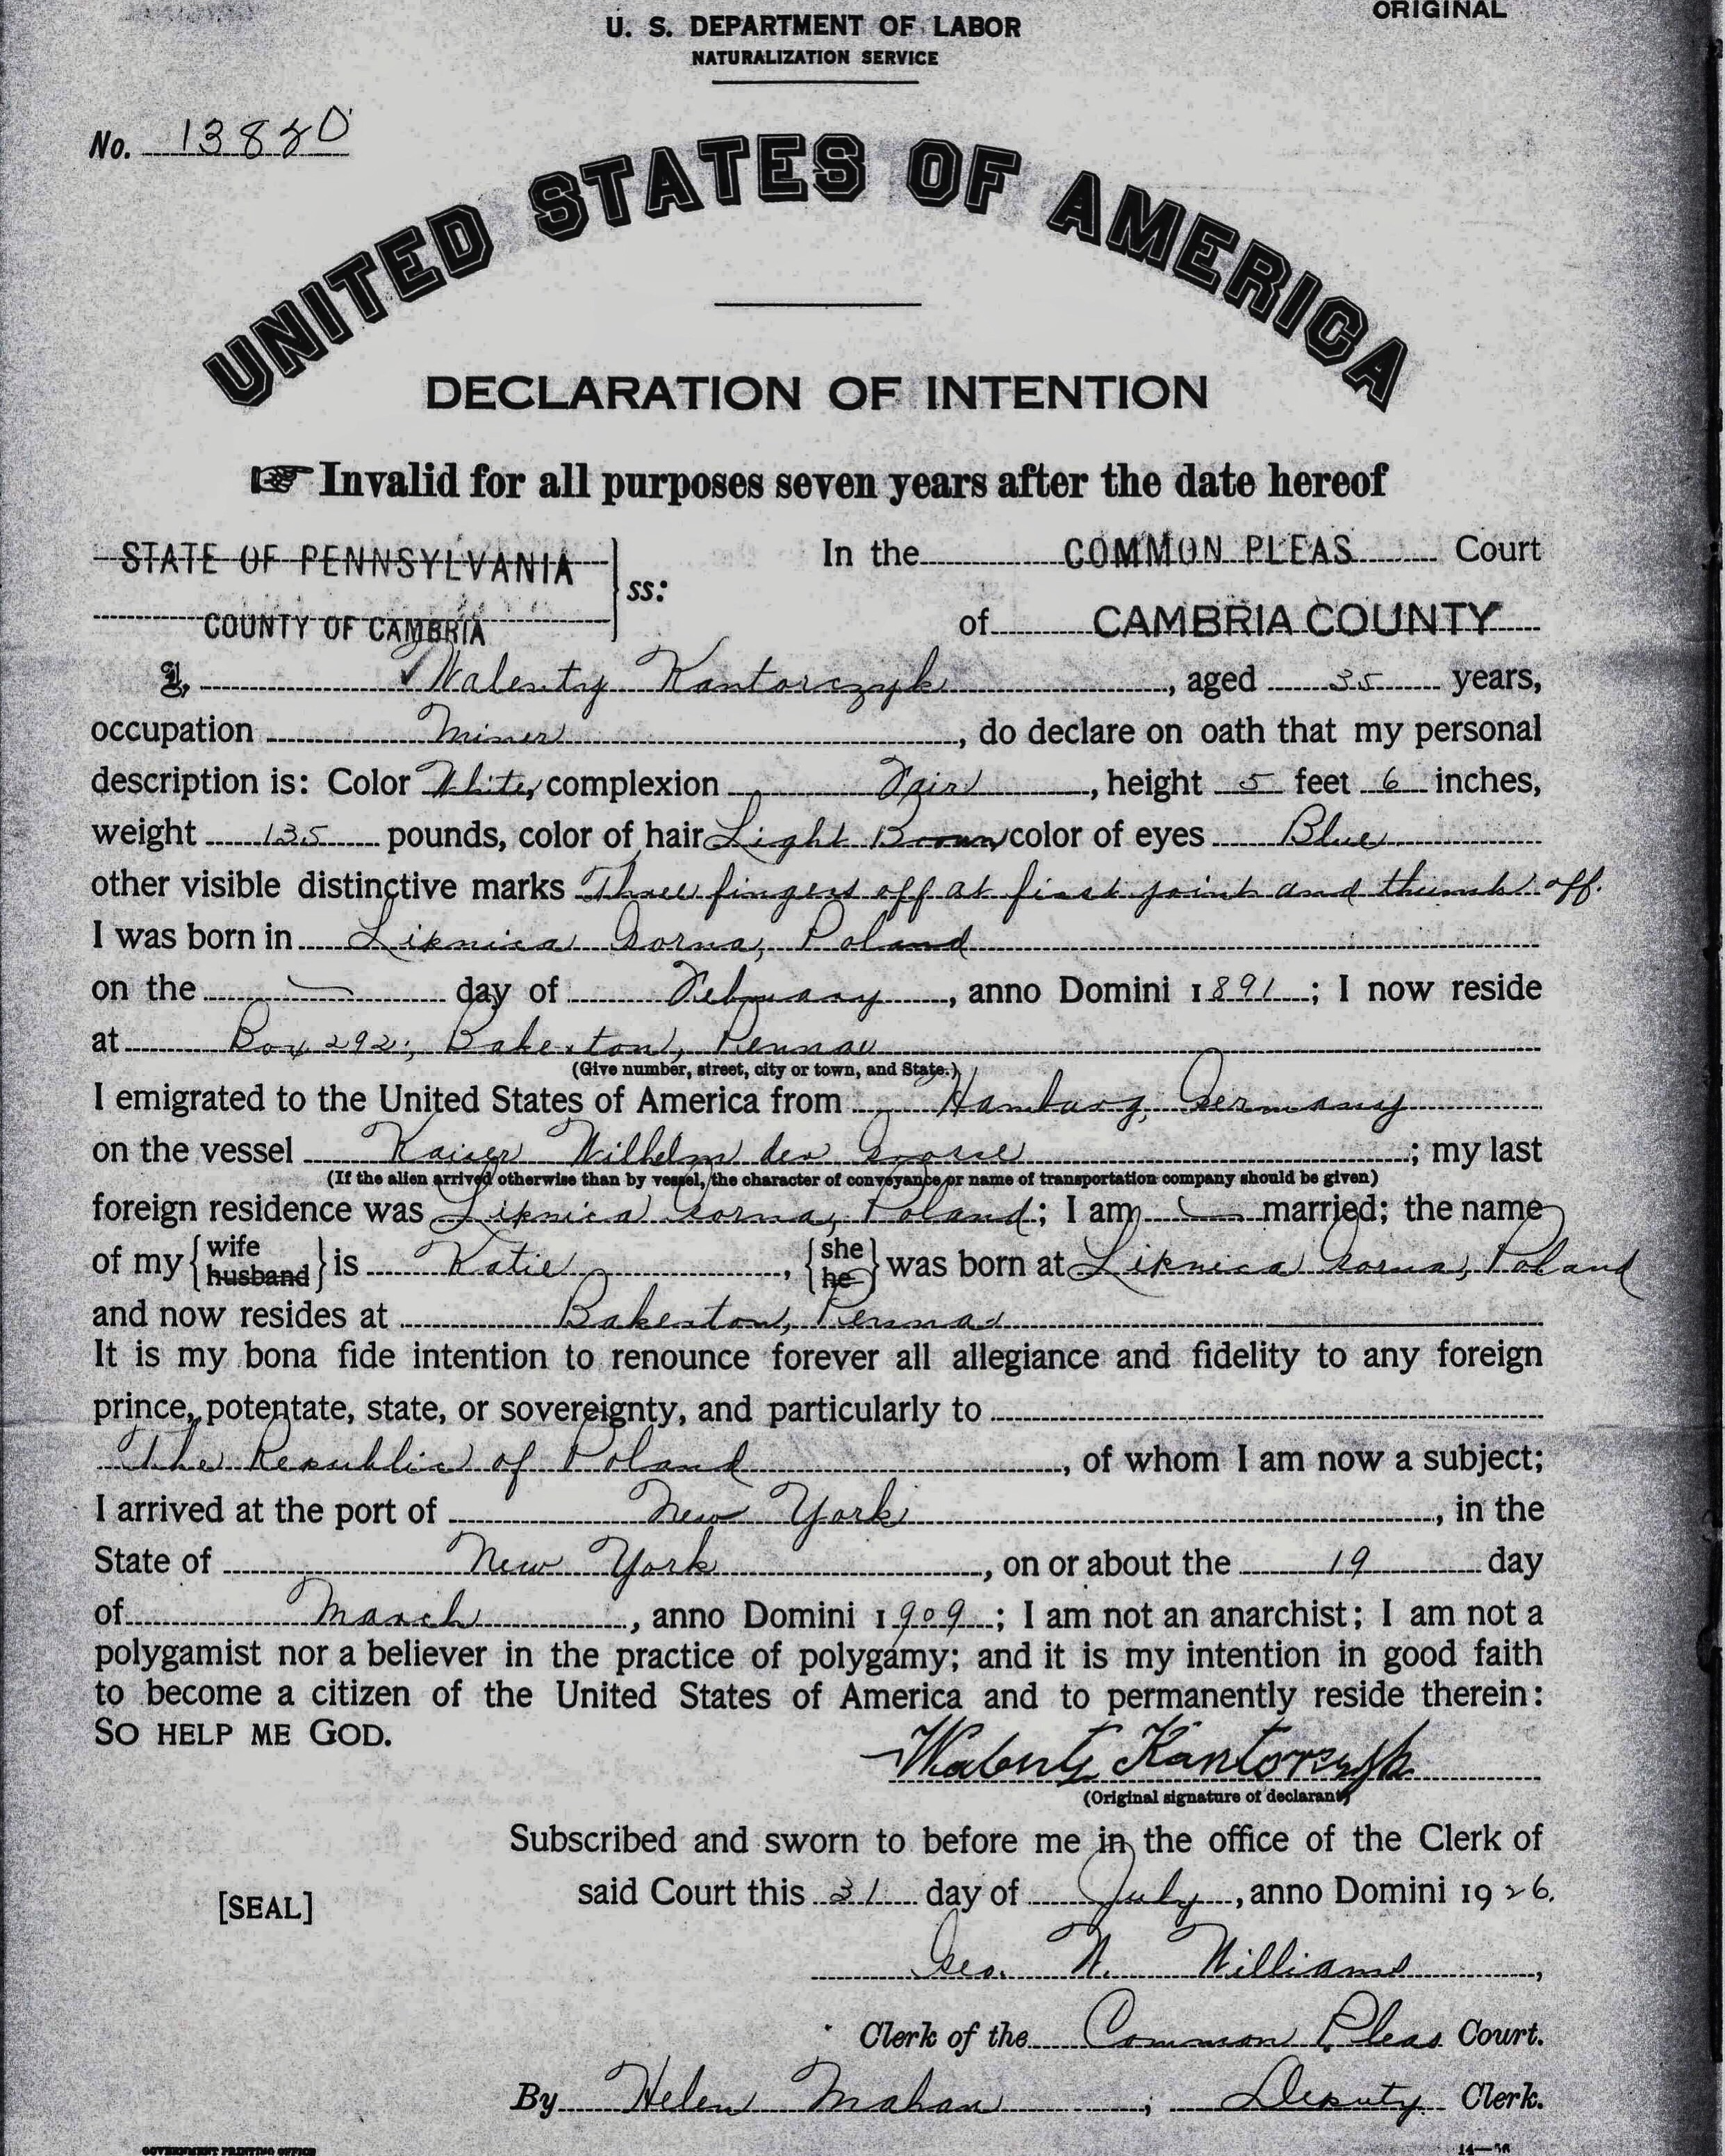 1926-07-31 Declaration of Intention (Naturalization) Walenty Kantorczyk